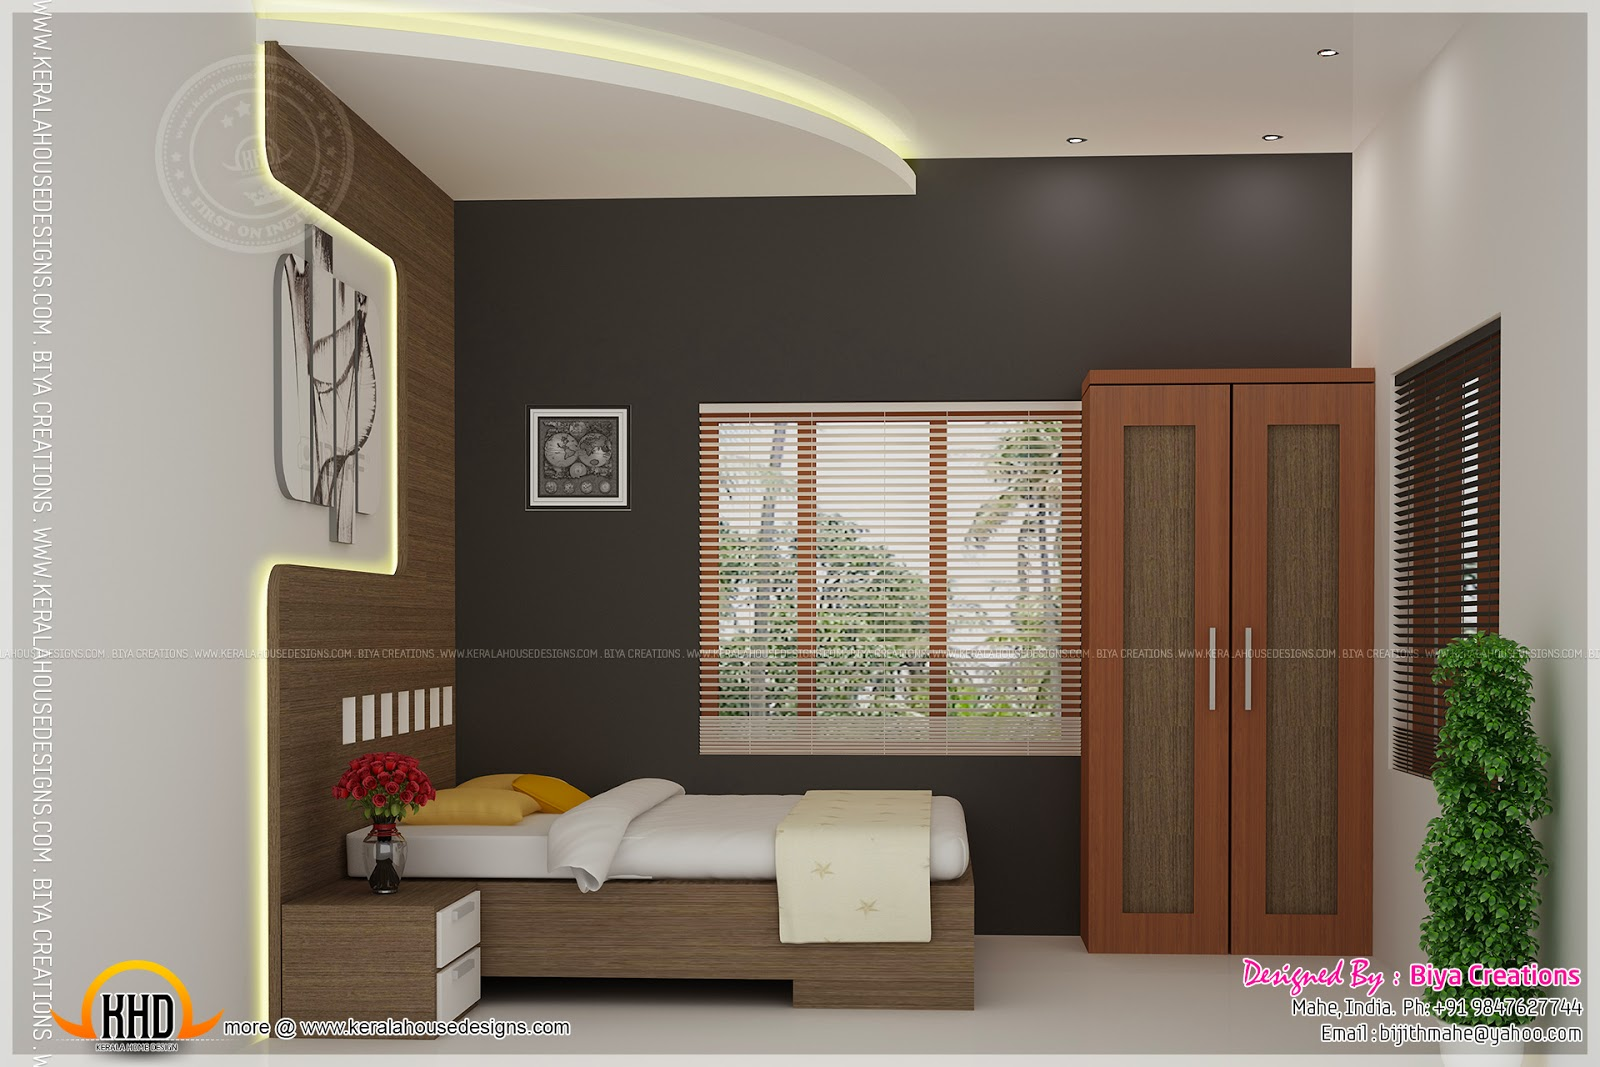 Bedroom kid bedroom and kitchen interior kerala home for Interior design of kitchen room in india